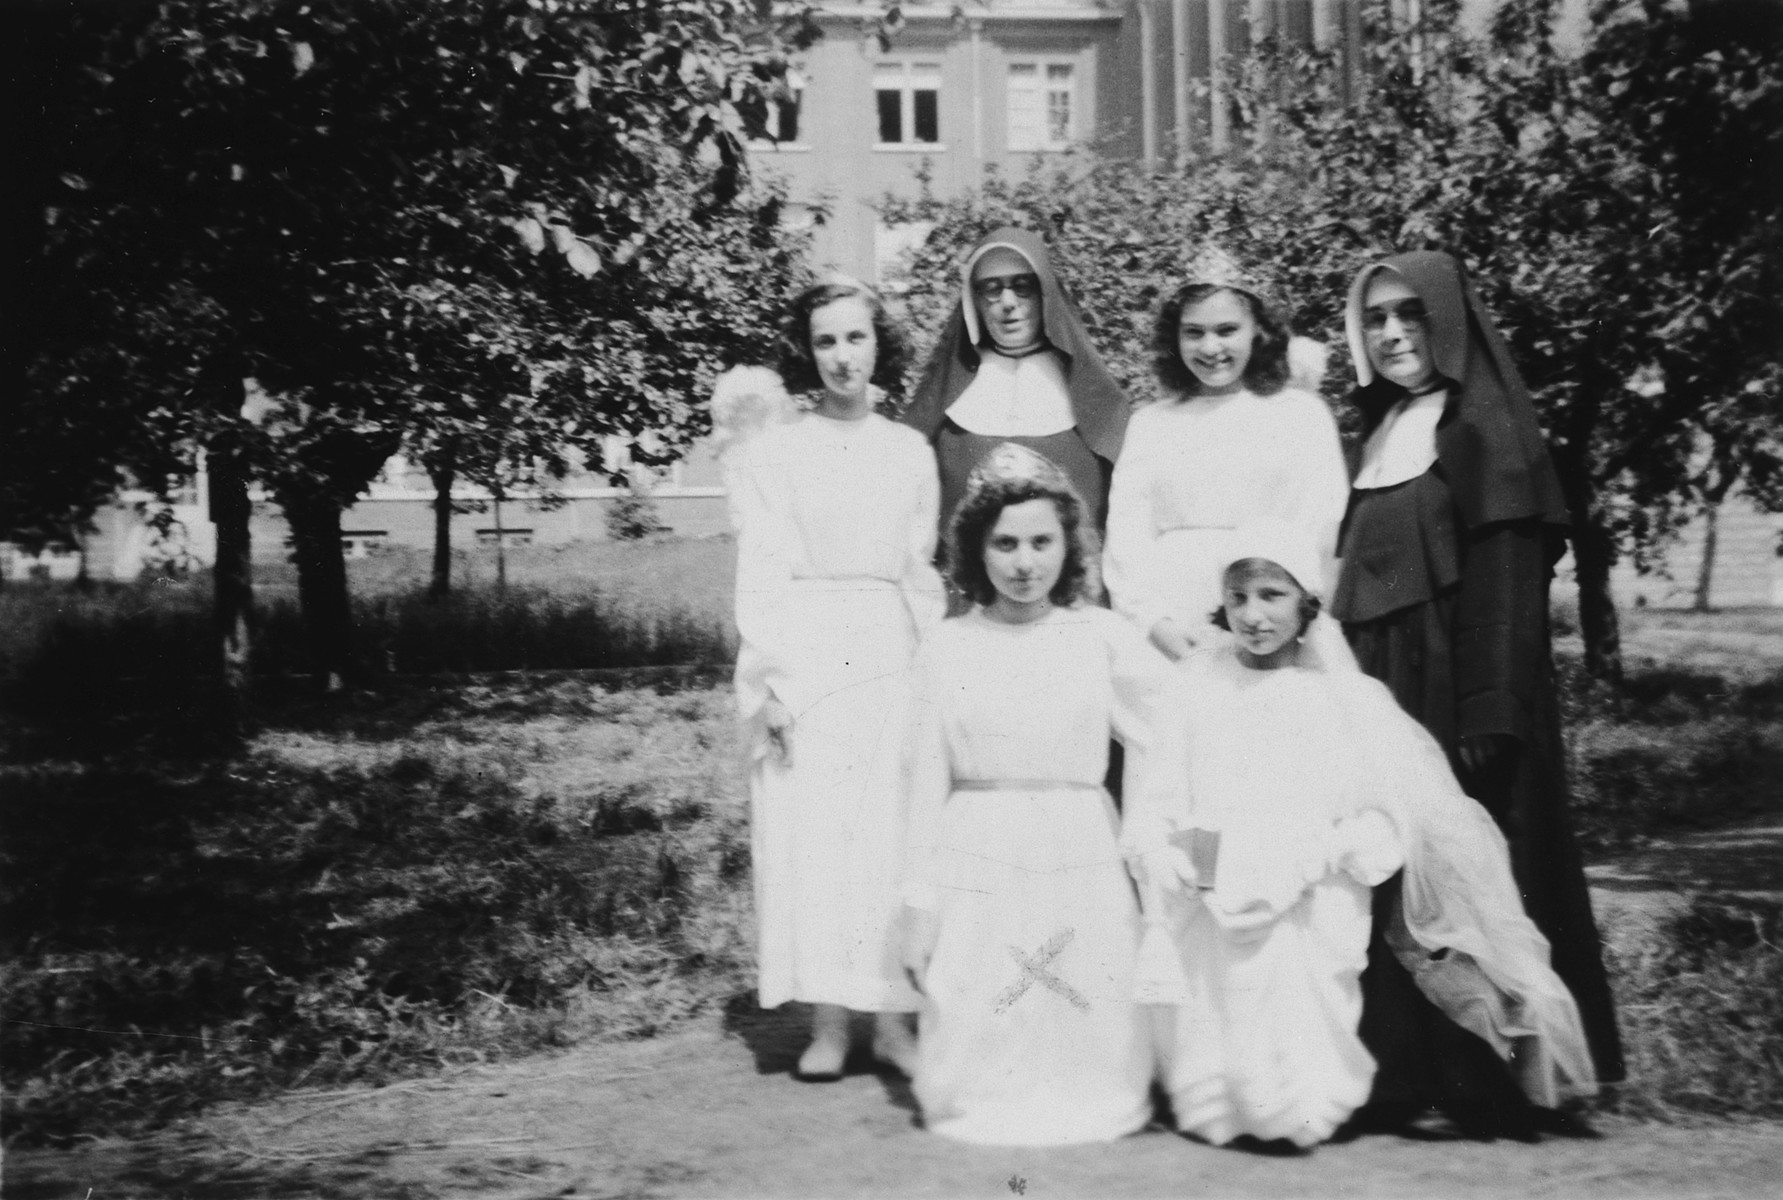 Four girls wearing white dresses pose together with two nuns in the Convent of St. Antoine de Padua on the occasion of the their first communion.  Pictured front row, left is AnneMarie Feller.